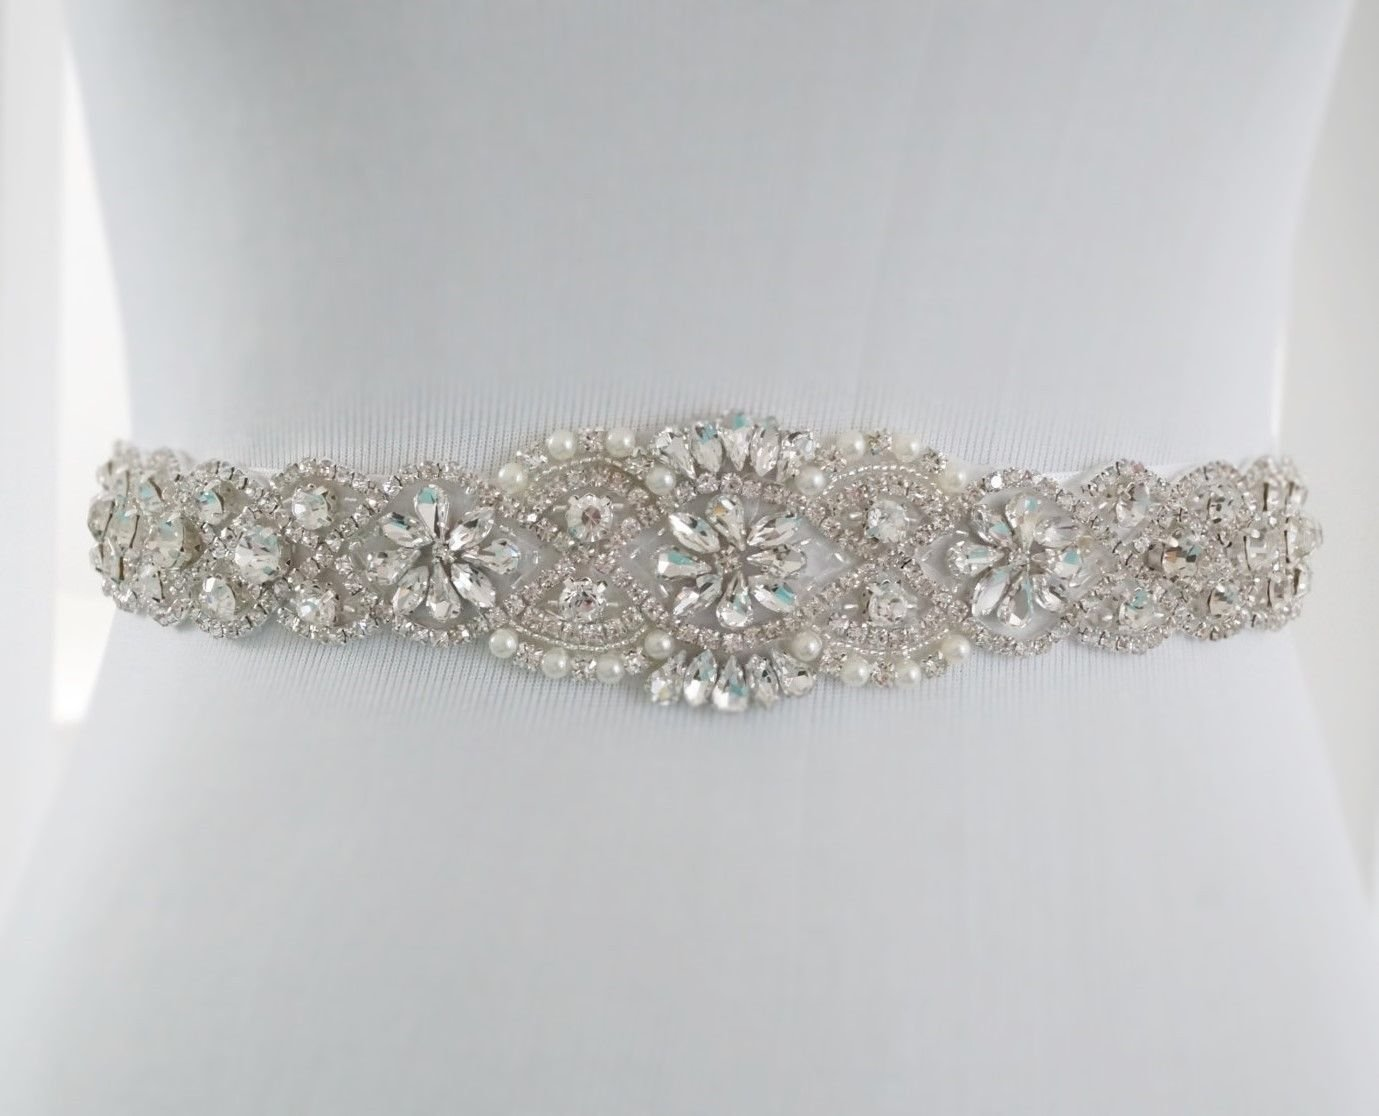 ShiDianYi Crystal Pearl Wedding Bridal Dress Sash Belt = 17 1/2'' Long